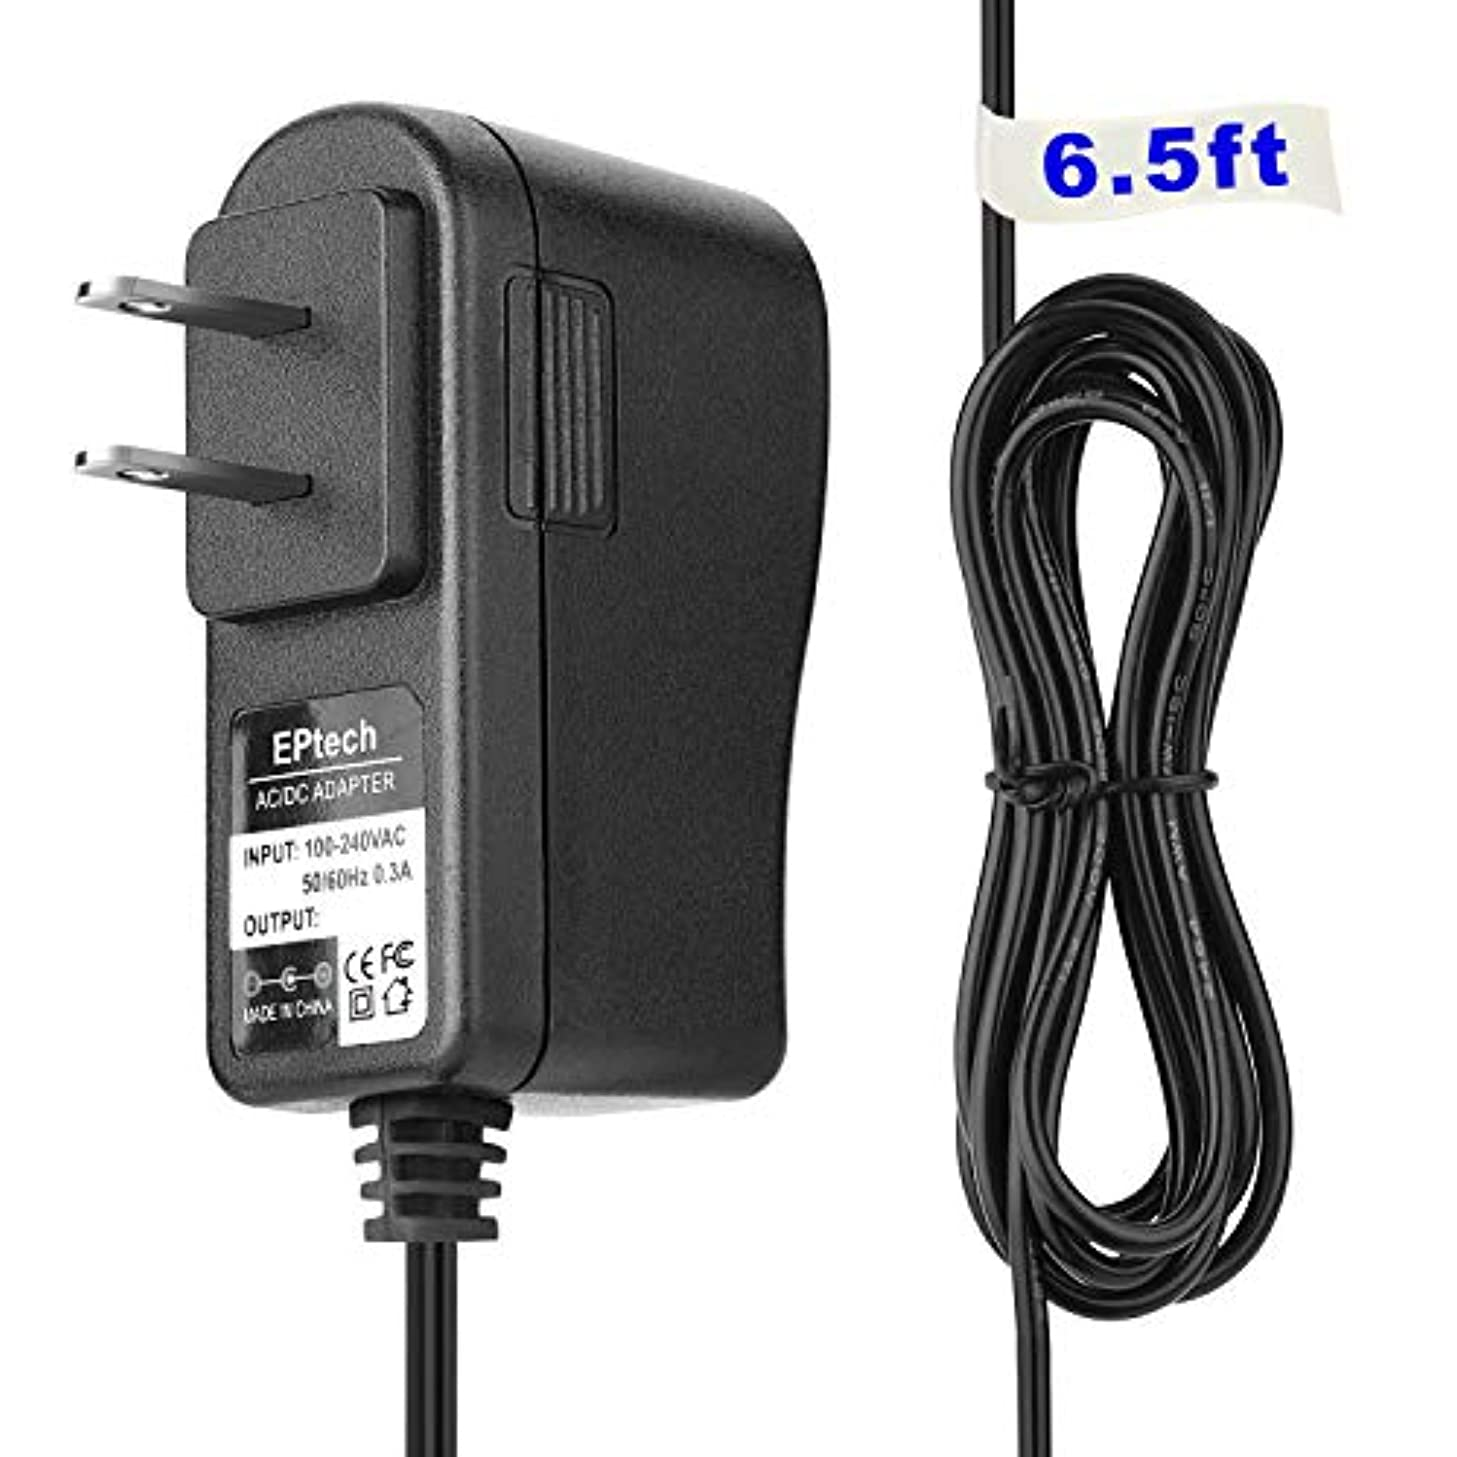 7.2V-7.5V AC/DC Adapter Replacement for Fujitsu ScanSnap S1300 S300 S300M PA03643-B015 PA03643-B005 PA03541-0002 PA03541-B002 PA03541-0001 PA03541-B005 PA03603-B015 PA03603-B005 fi-65F PFU